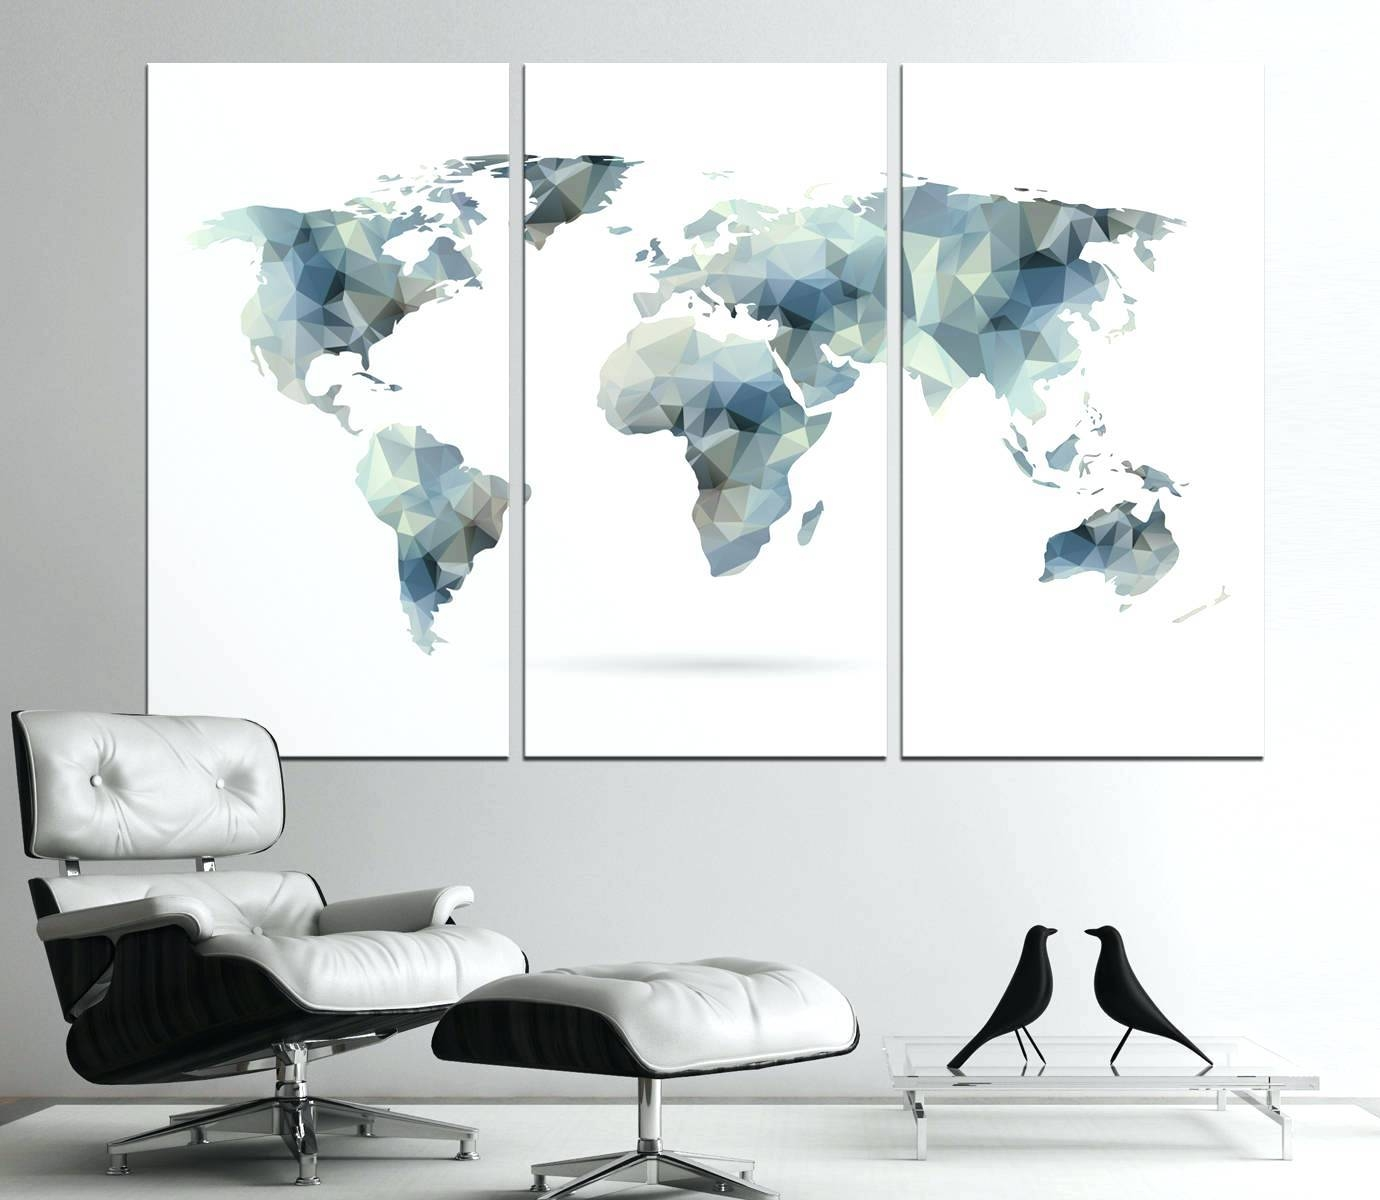 Wall Arts ~ Wall Art For Home Office Large Geometric World Map Intended For Newest World Map Wall Art (View 11 of 20)